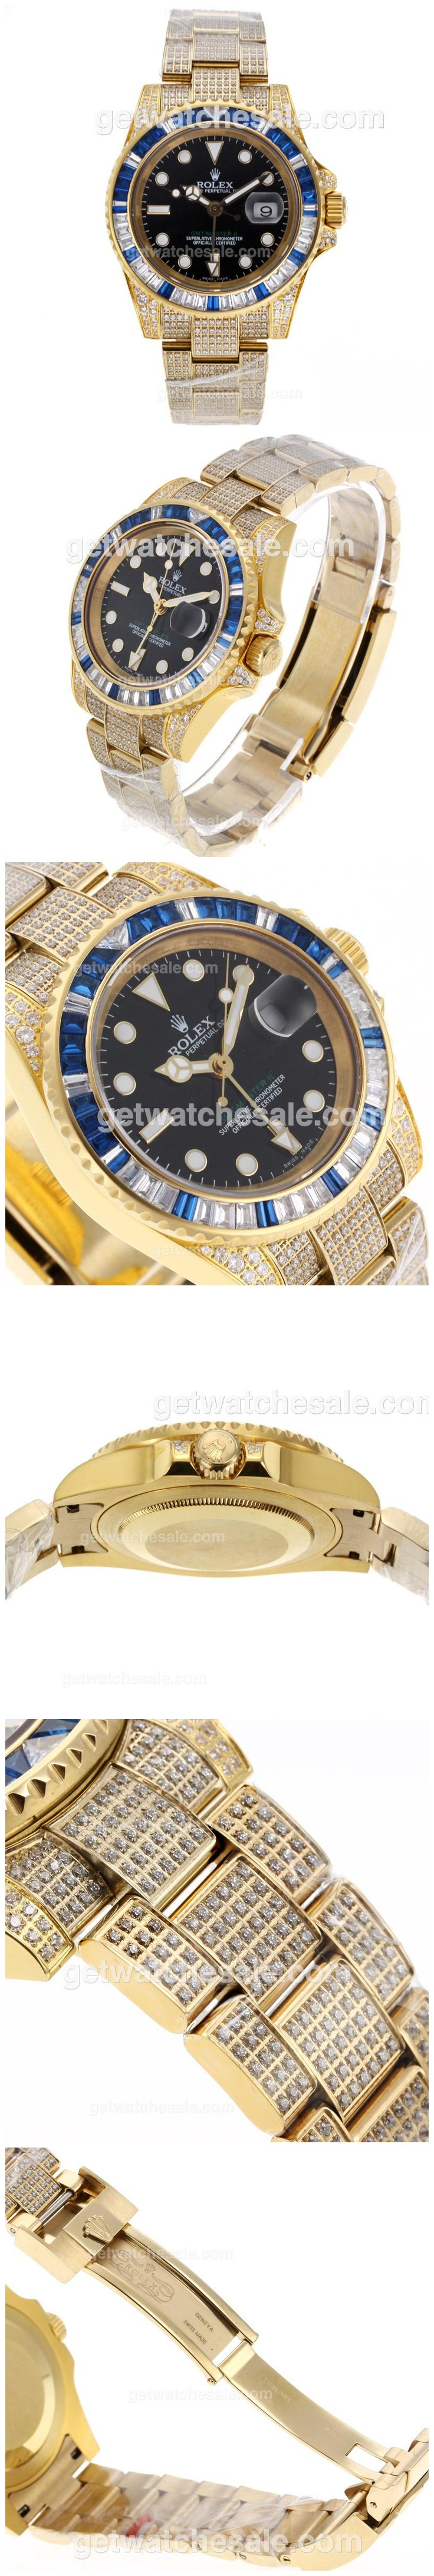 Rolex GMT-Master II Swiss ETA 2836 Movement Full Gold Blue/White CZ Diamond Bezel with Full Diamond Strap sale $868.00